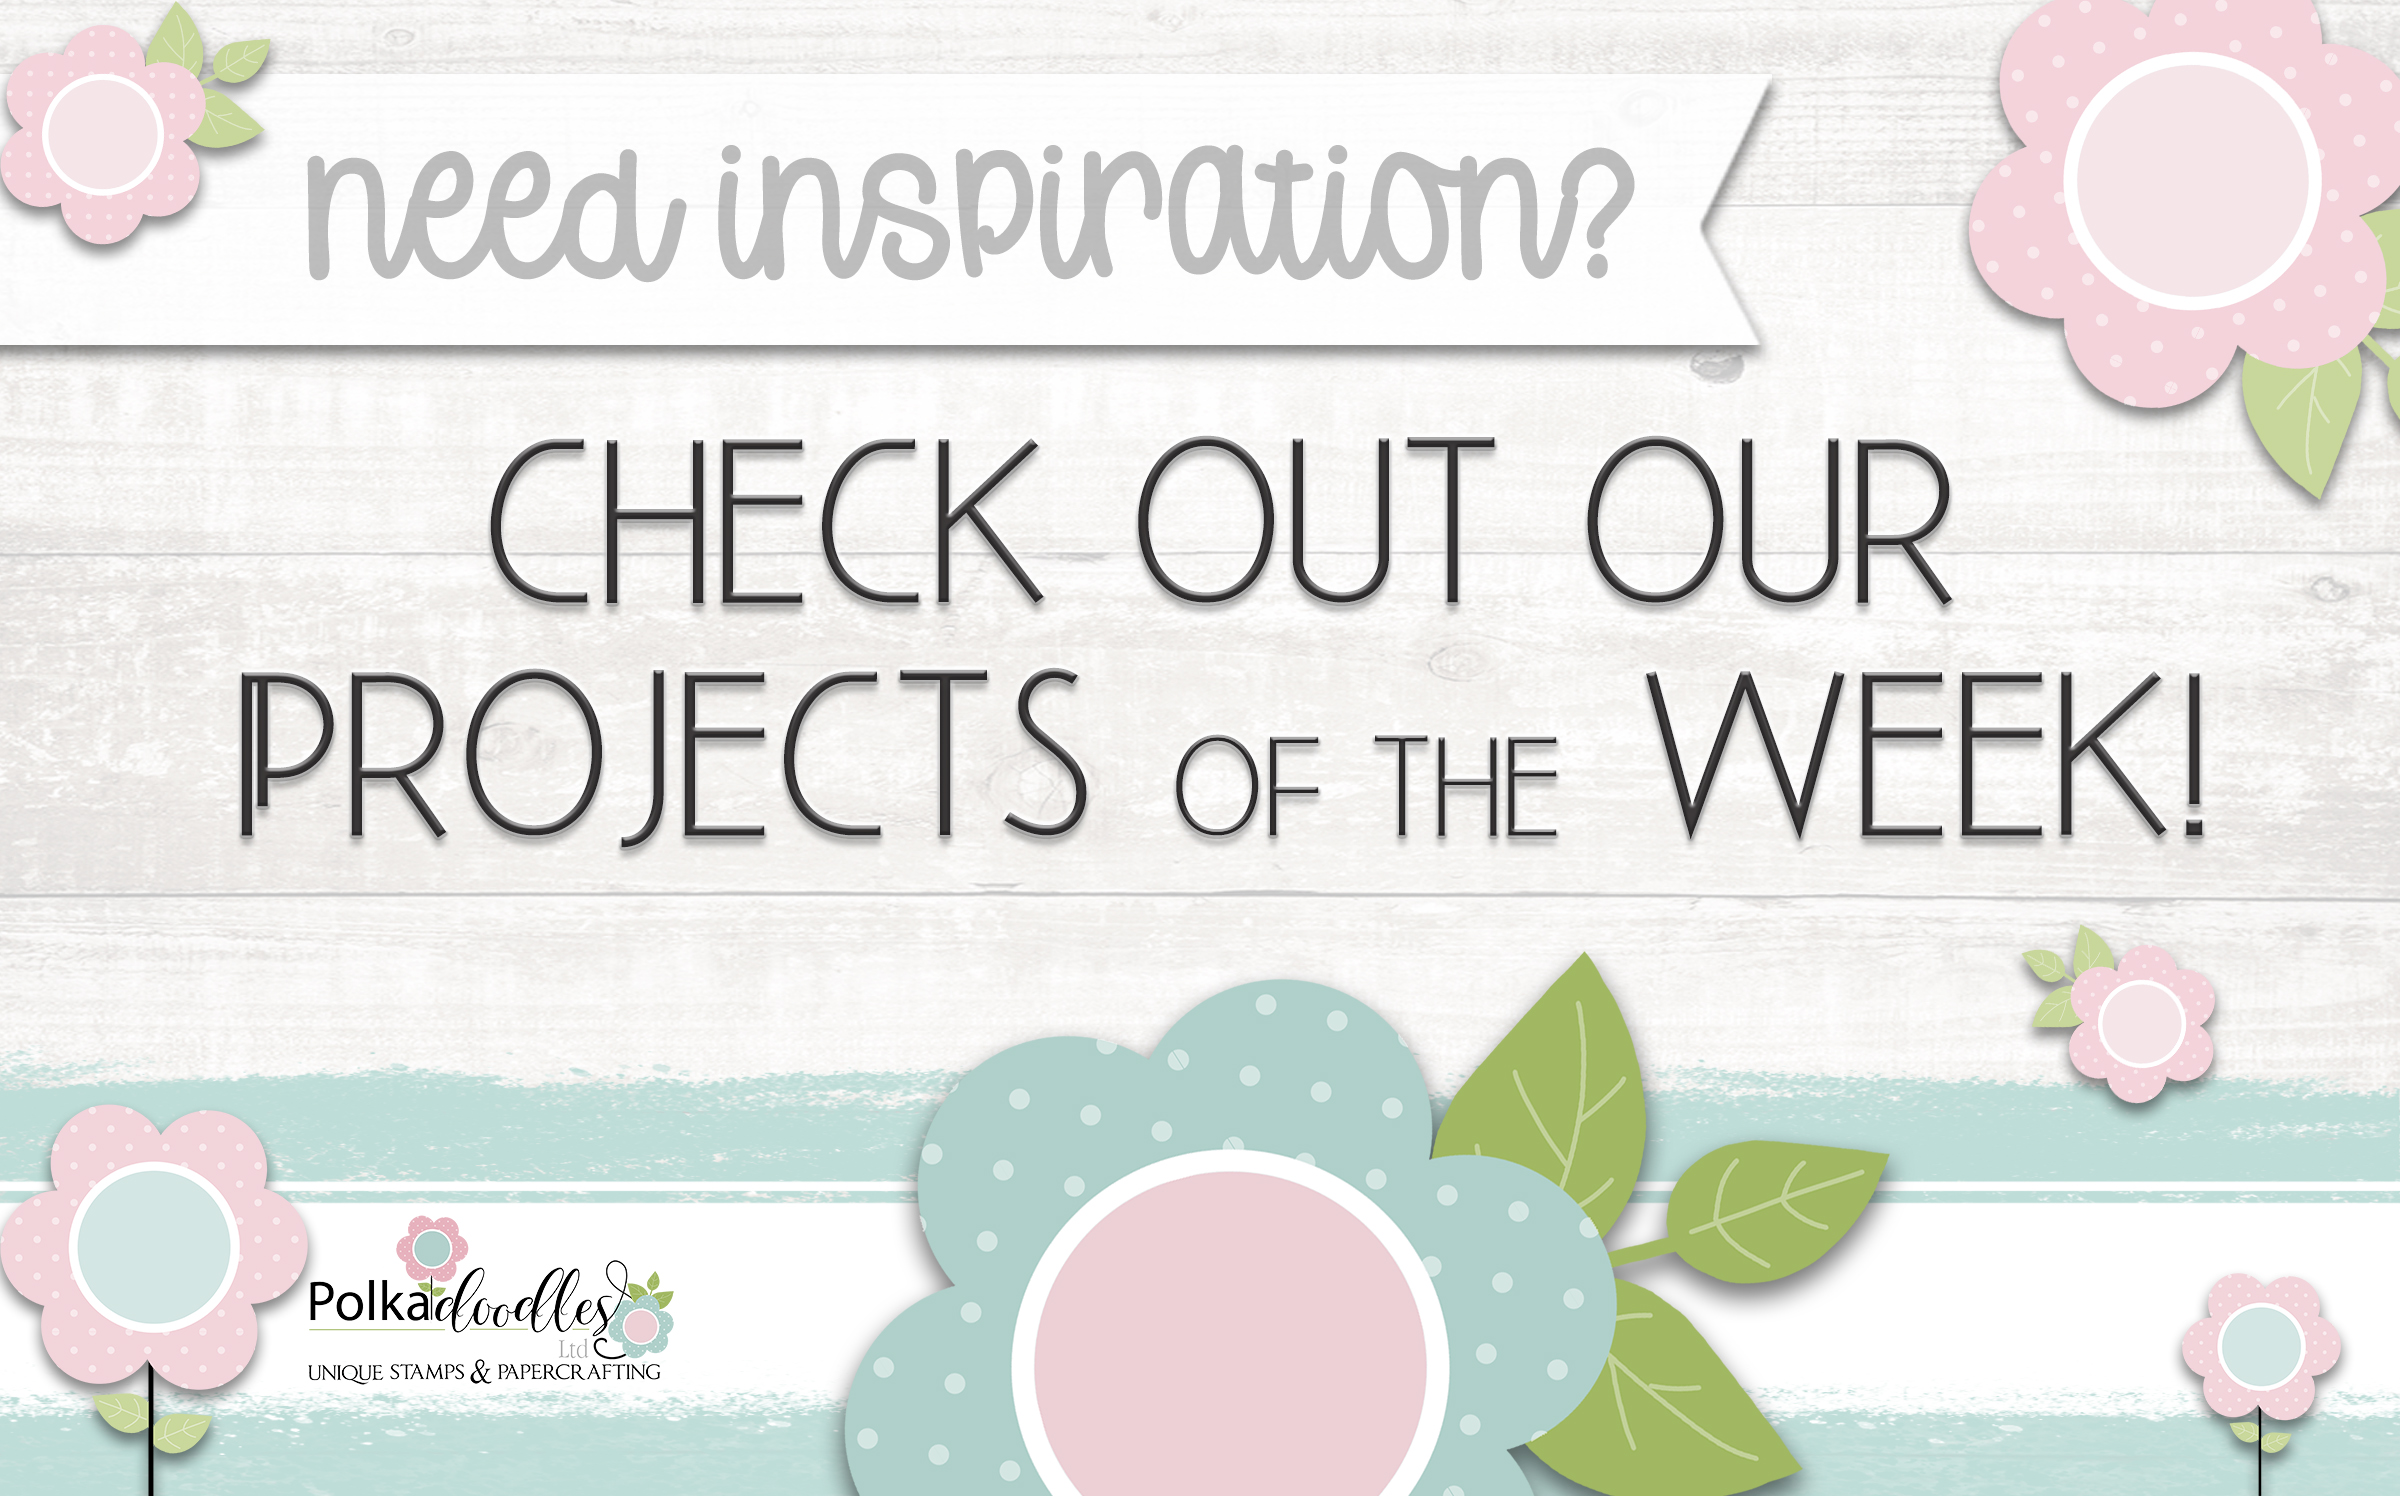 check out our projects of the week from our Design Team!